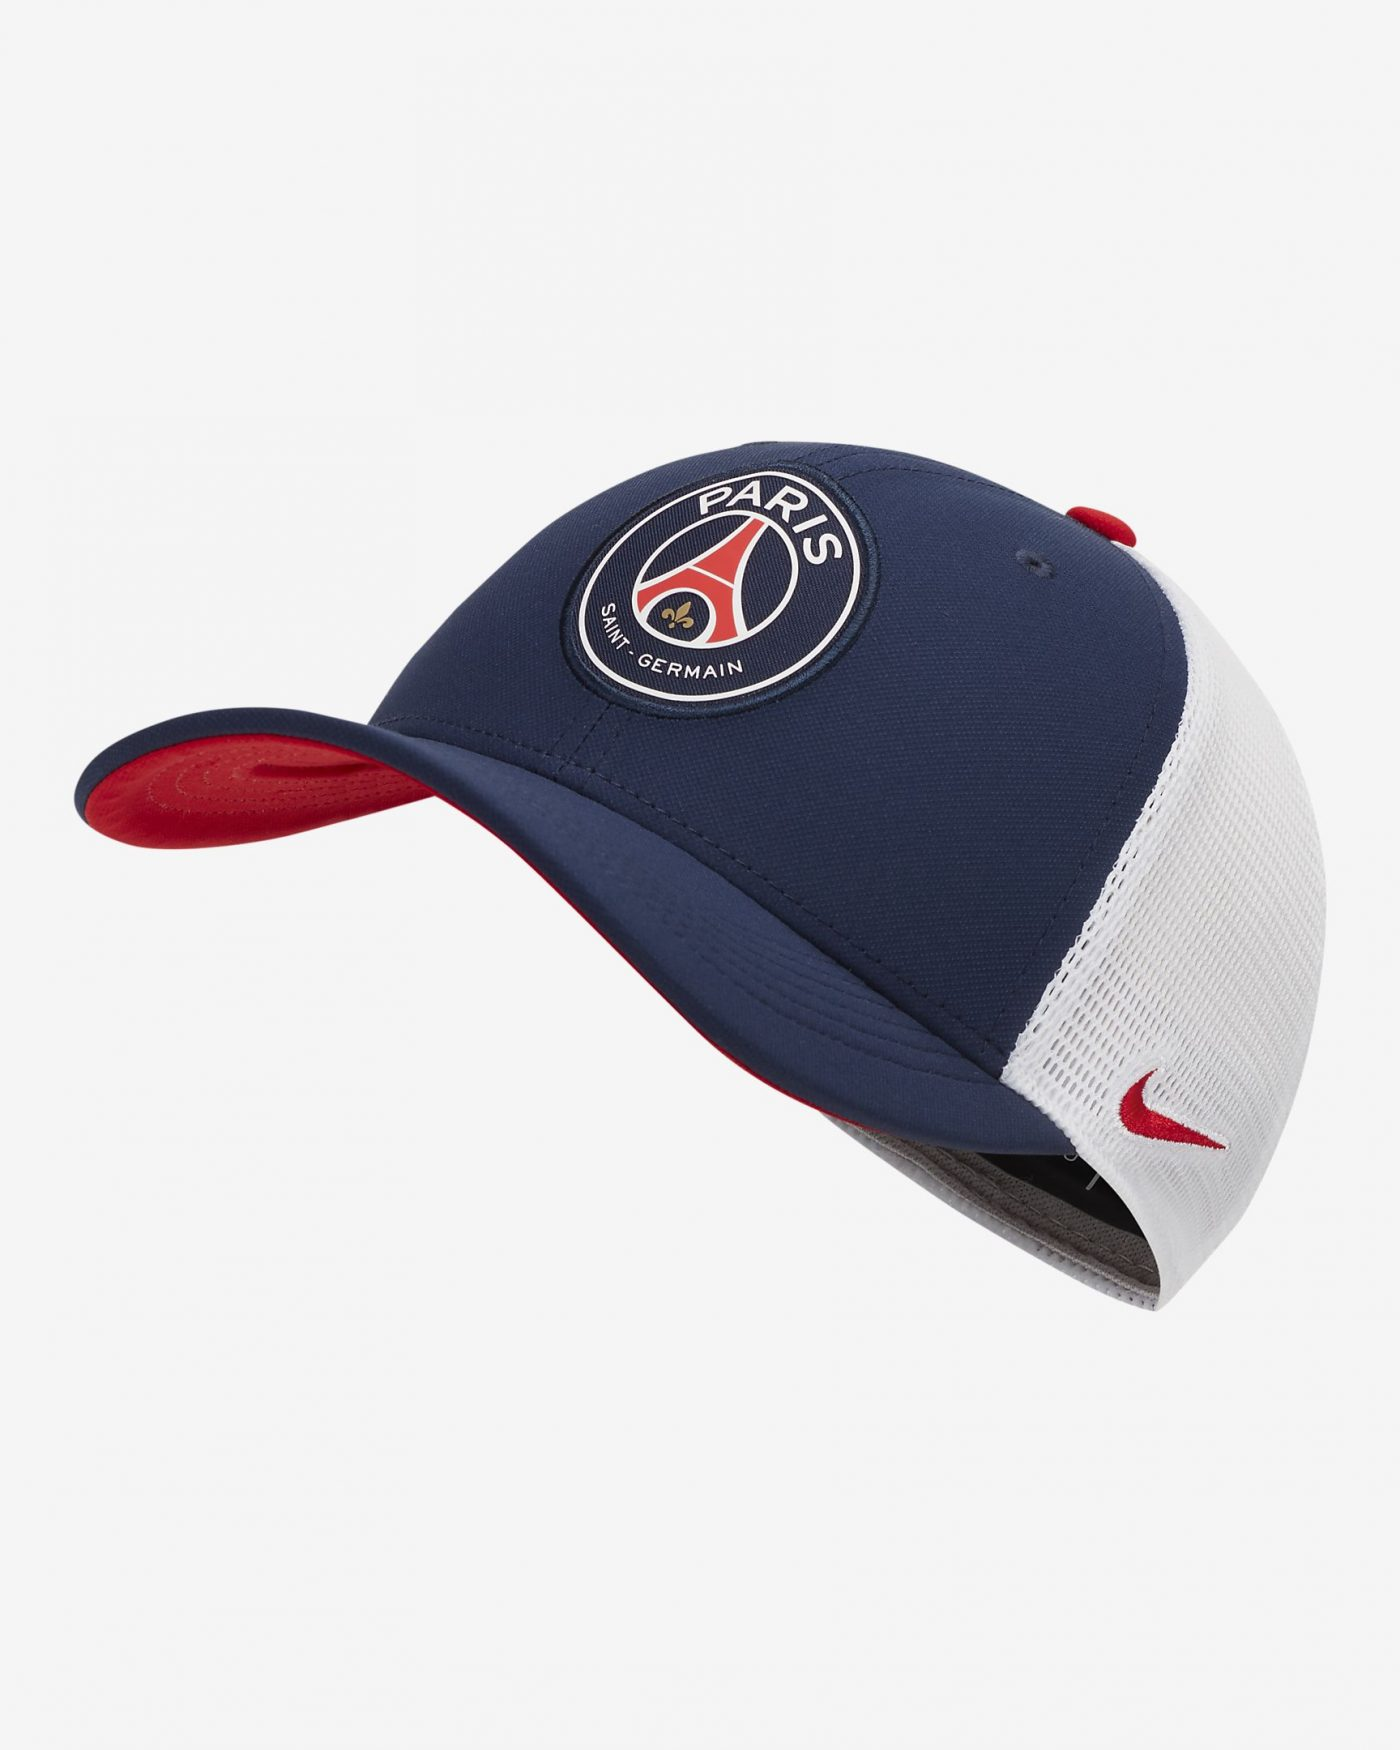 collection-lifestyle-psg-nike-2020-2021-2